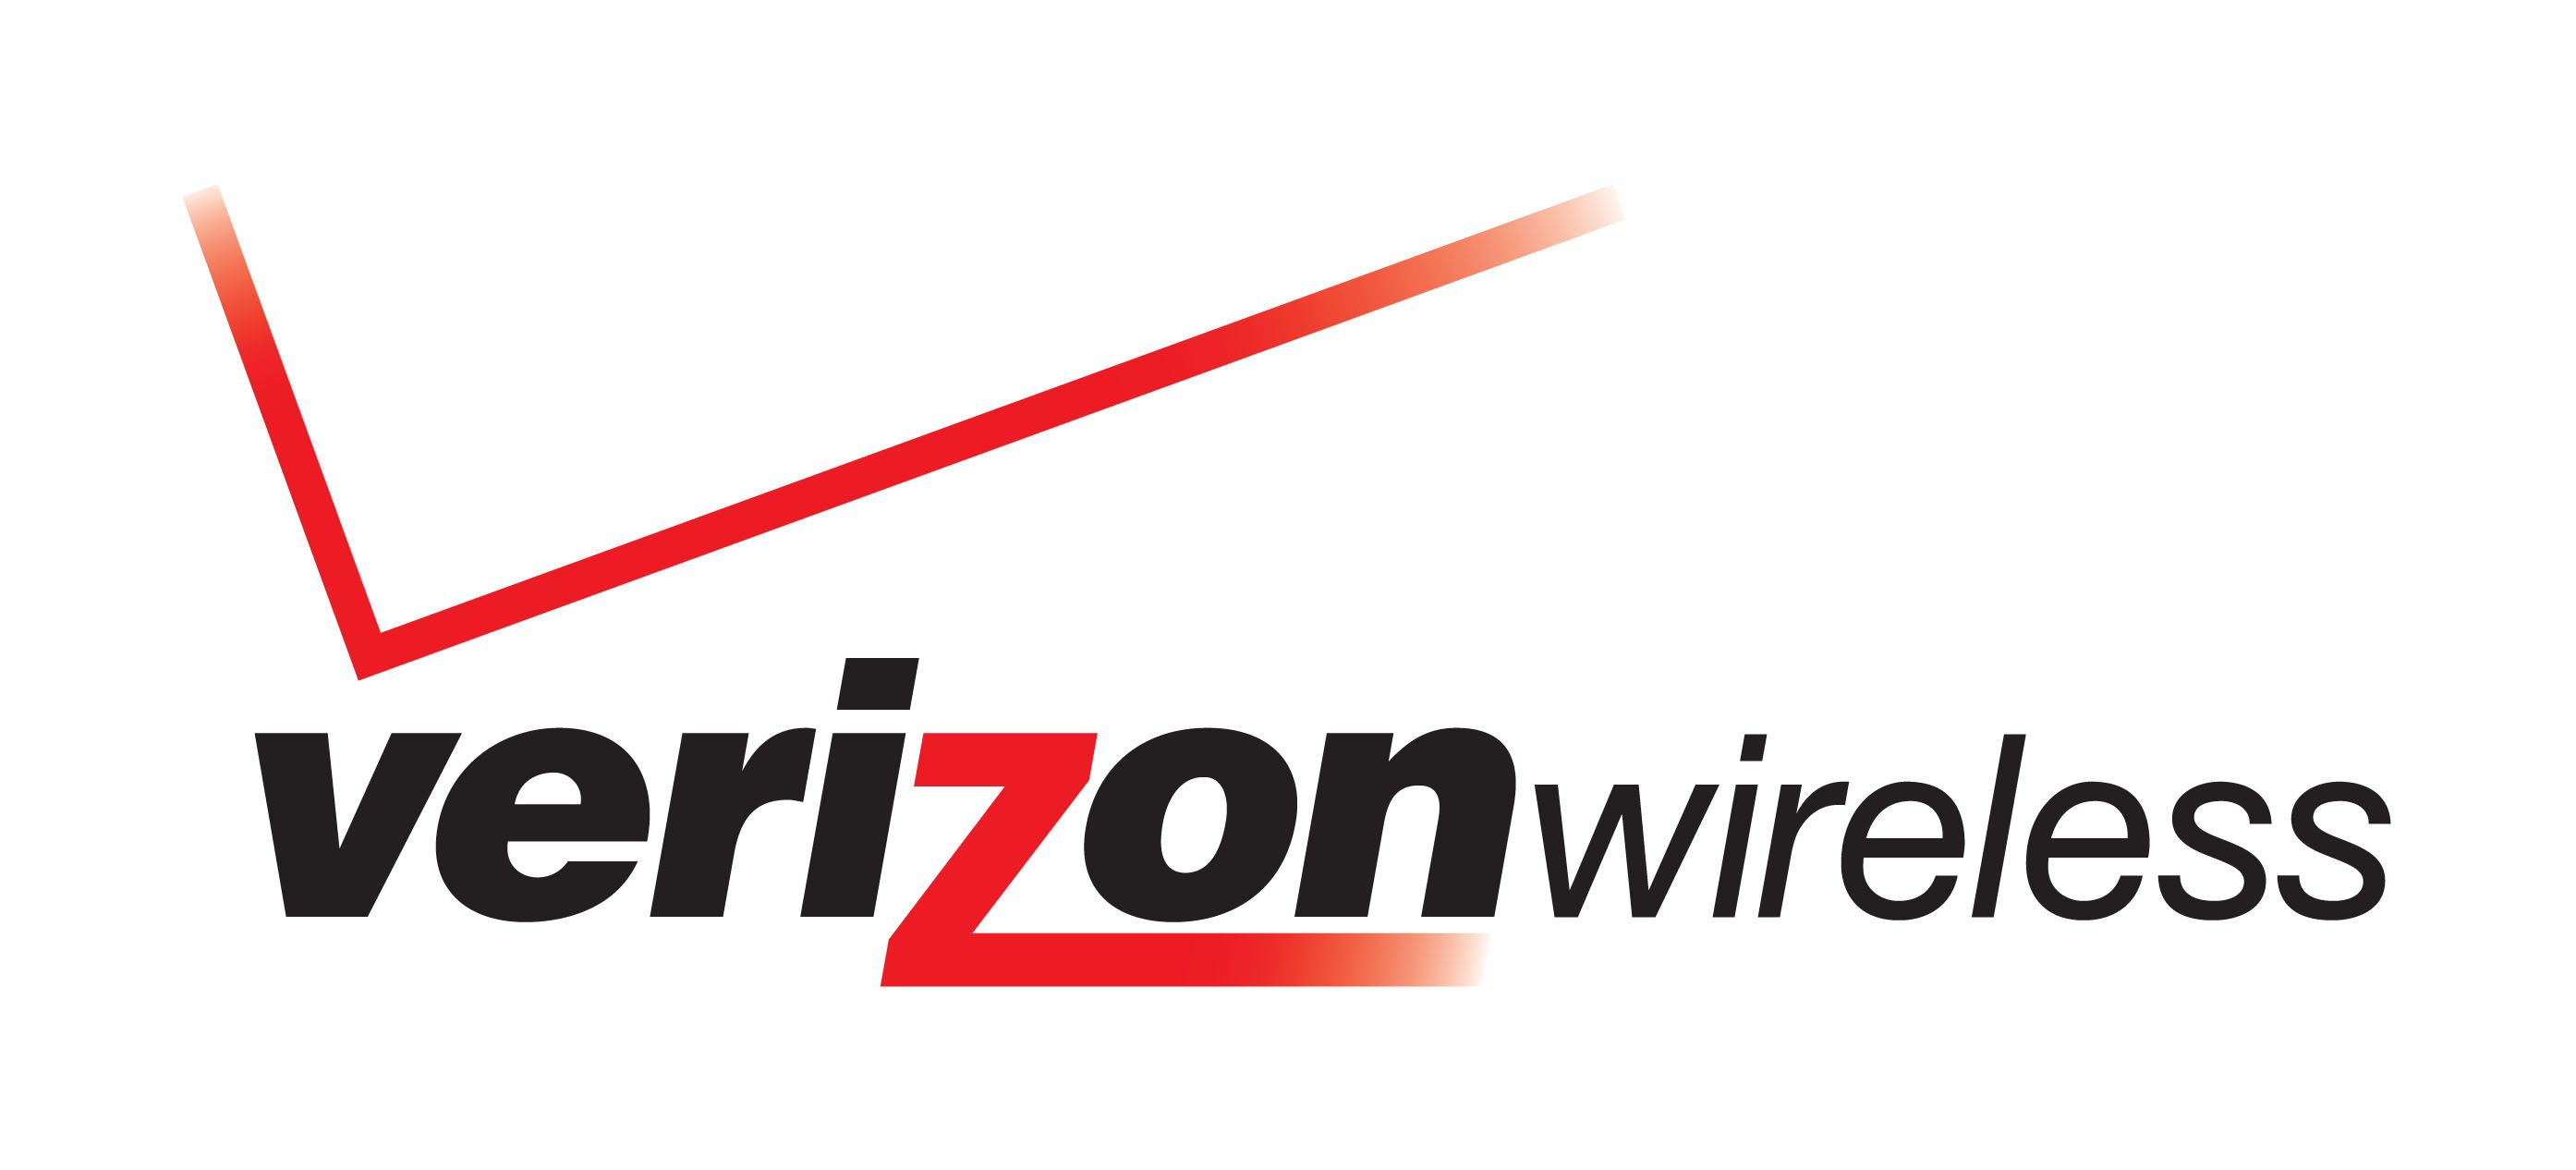 Verizon Logo - verizon-wireless-logo – Beaufort Town Center